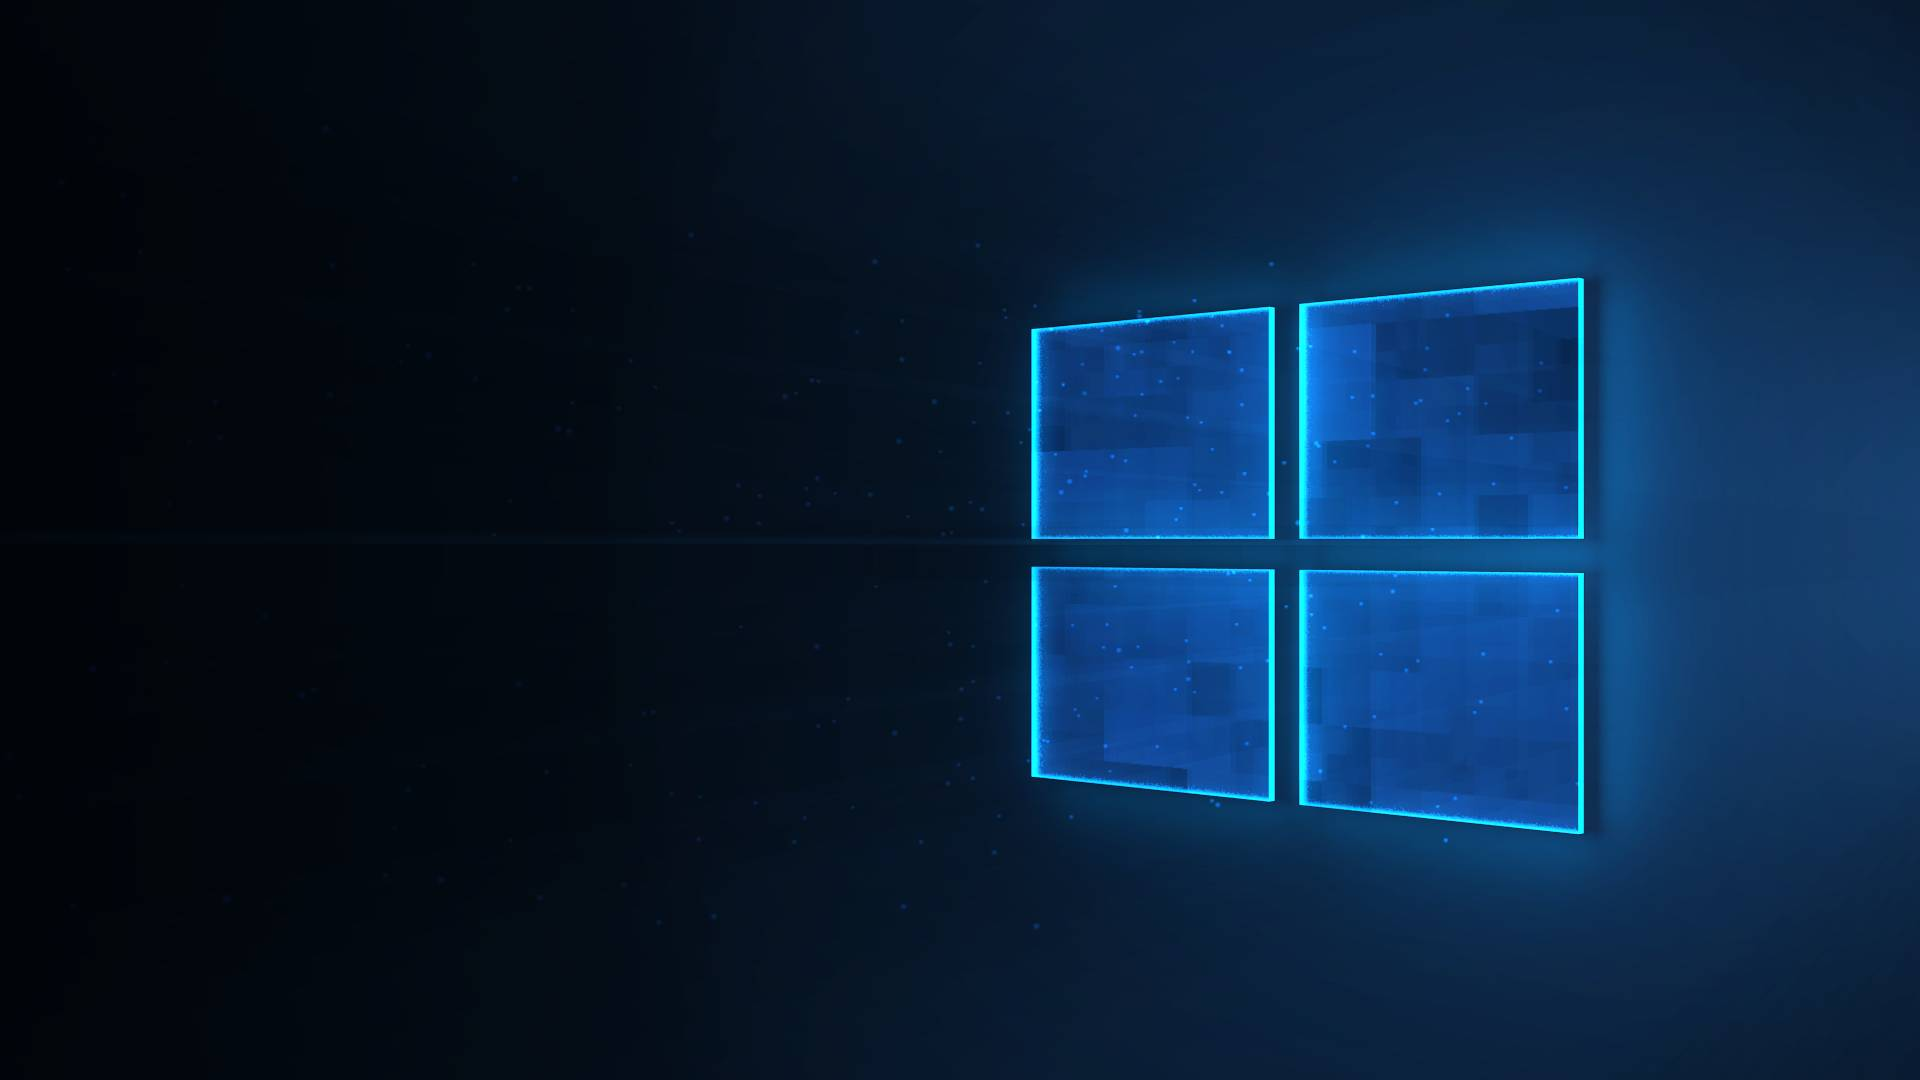 Wallpaper de Windows 10